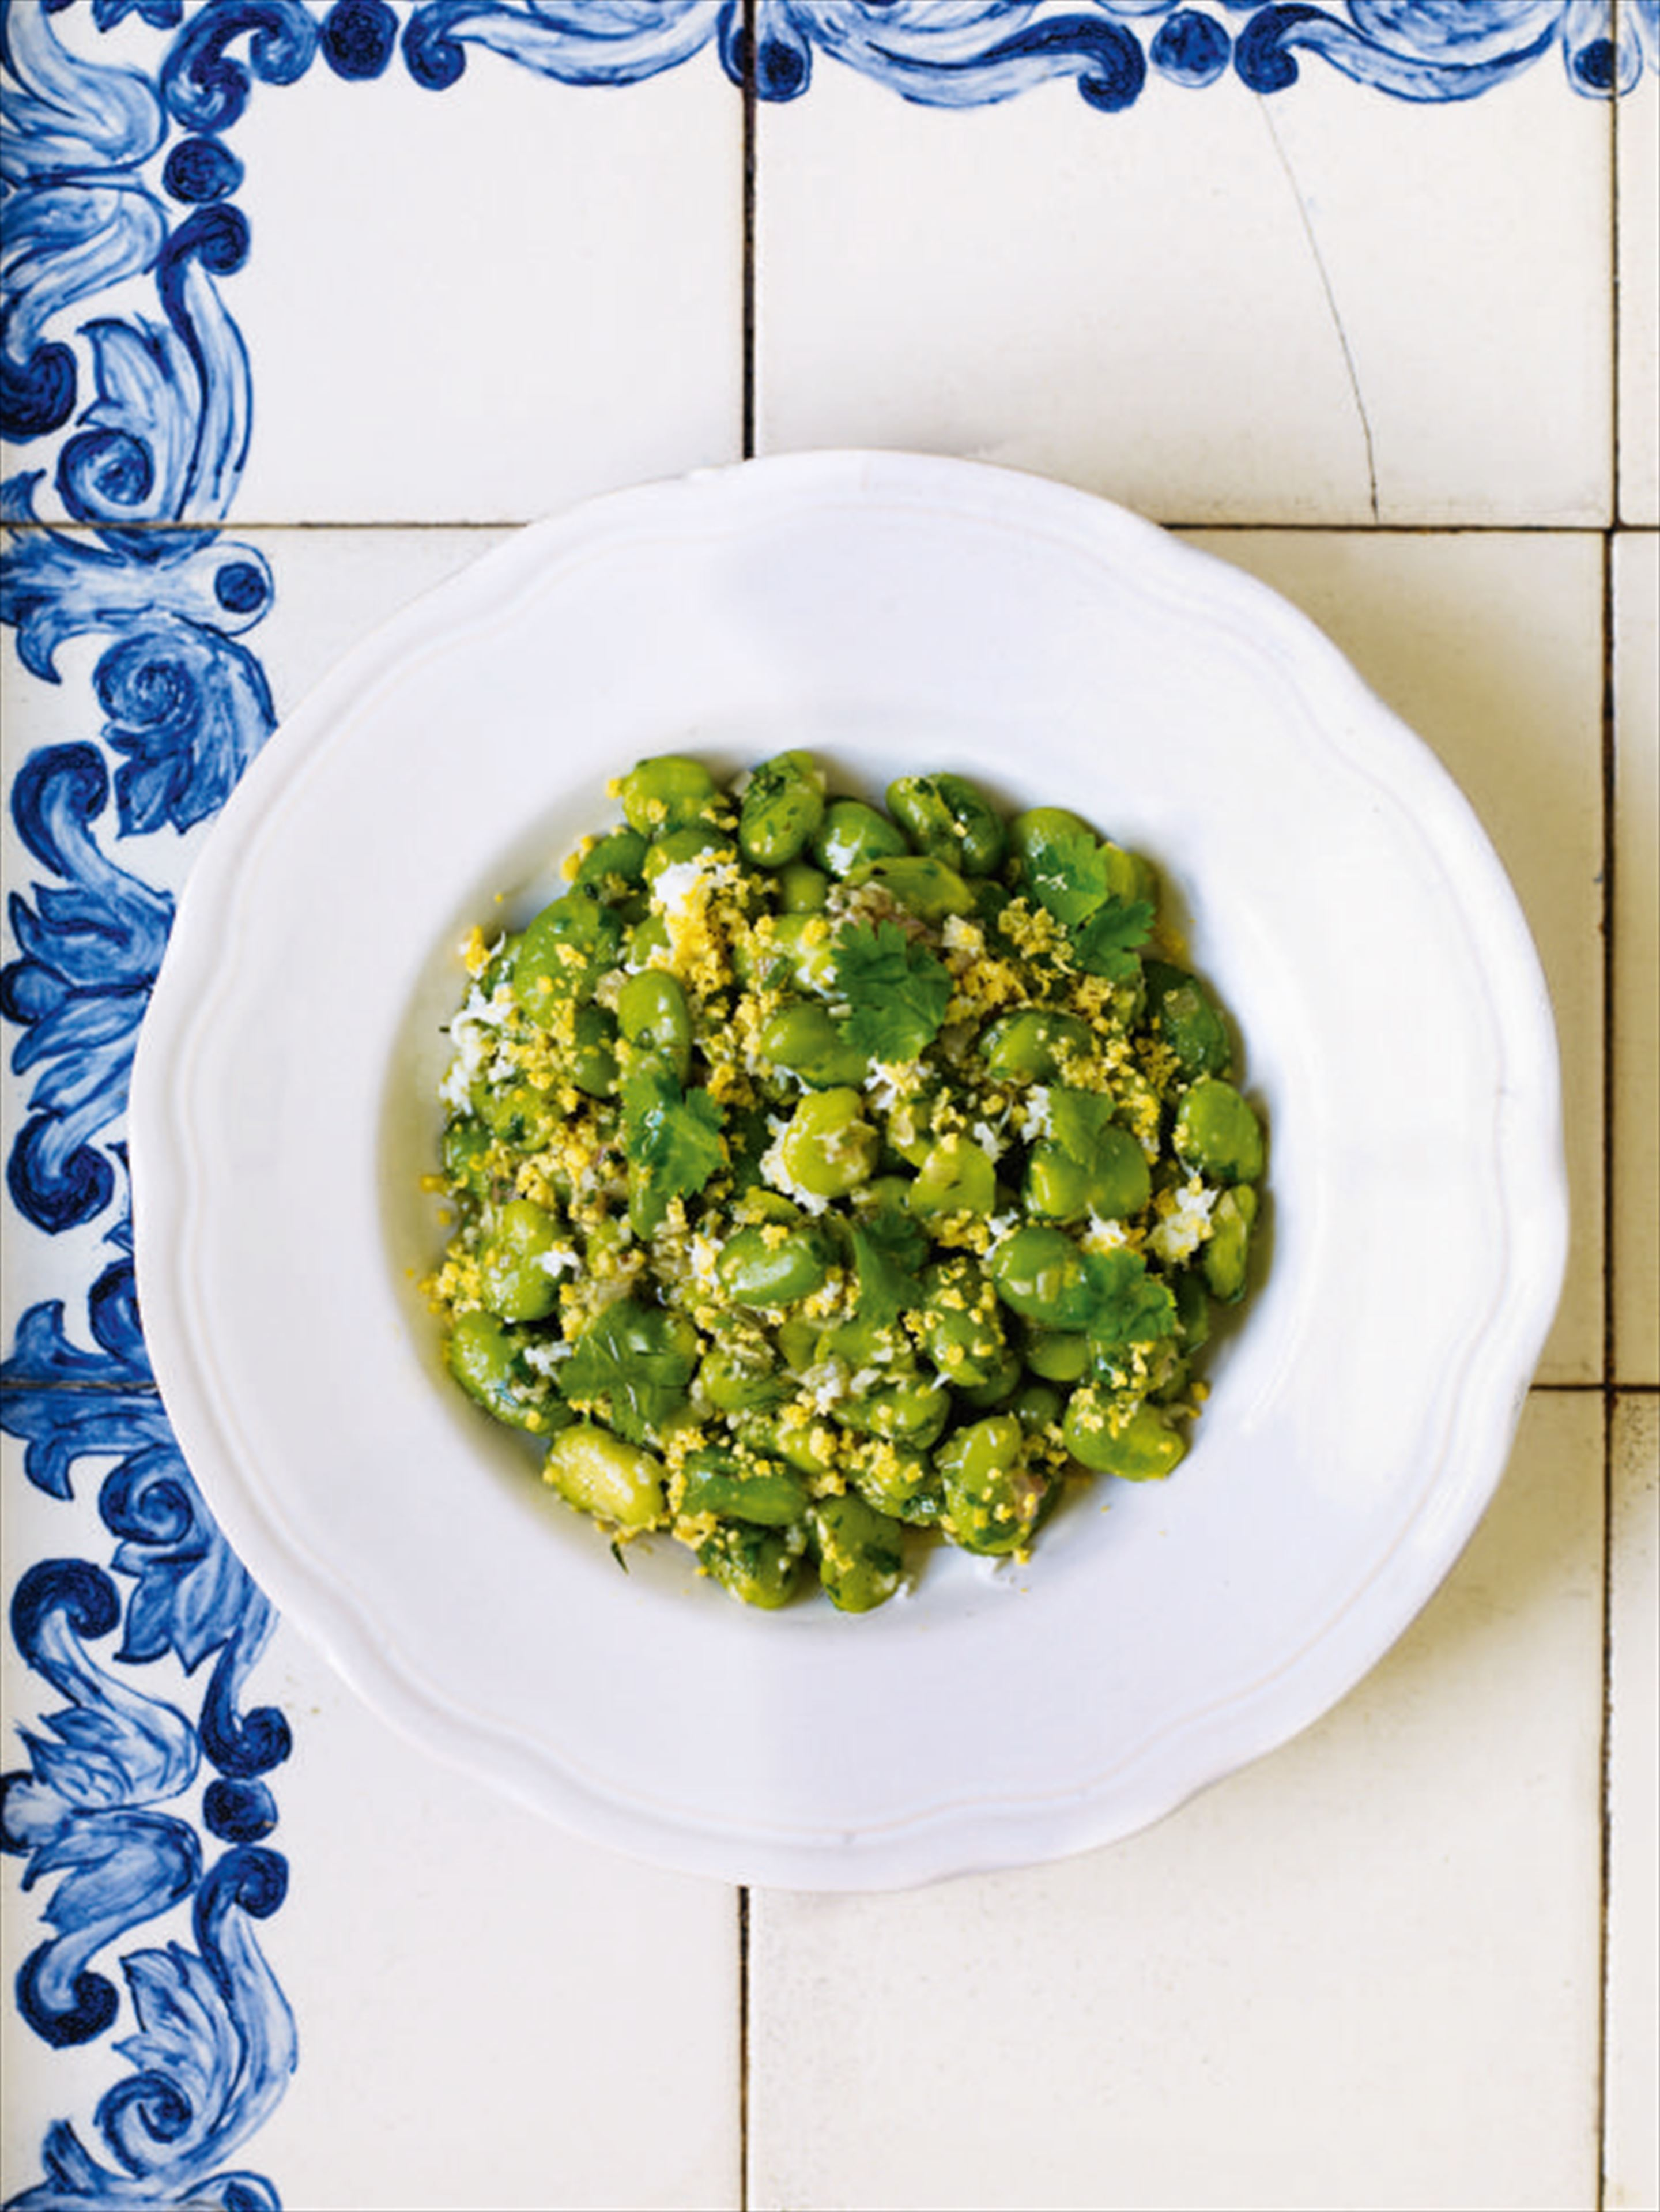 Coriander-marinated broad beans